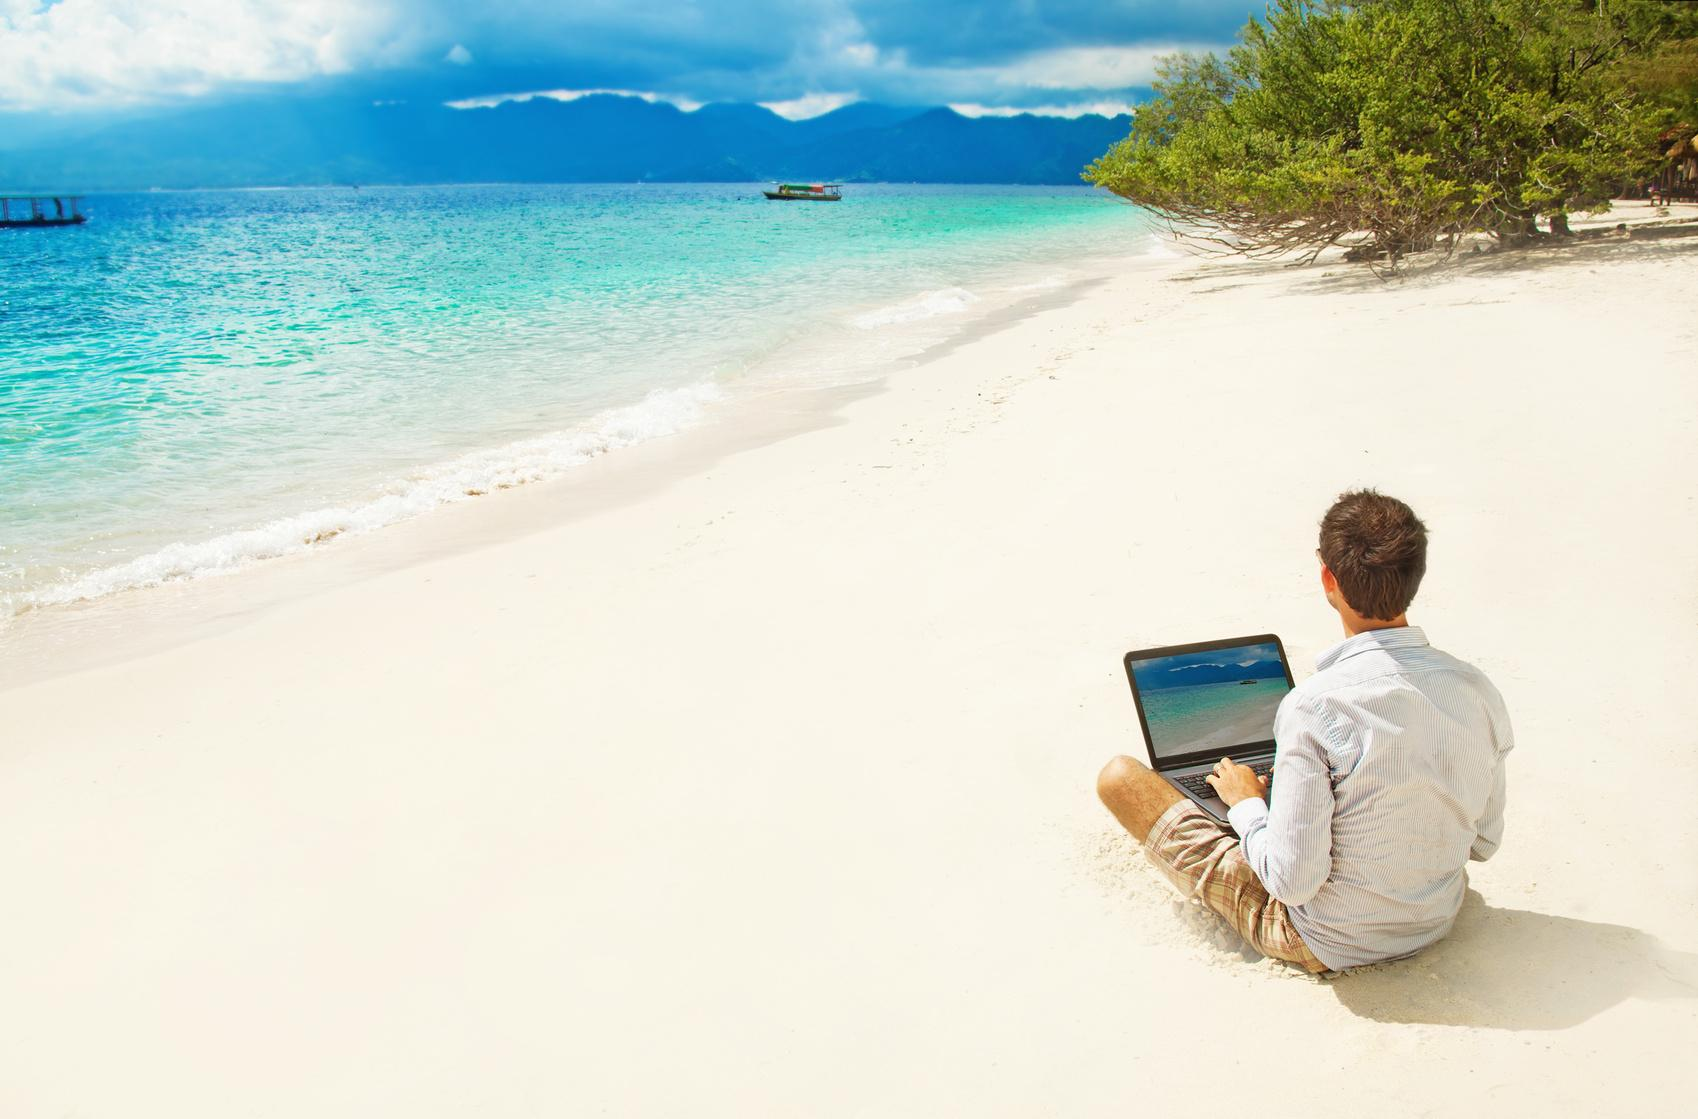 Web content writing lets you work anywhere